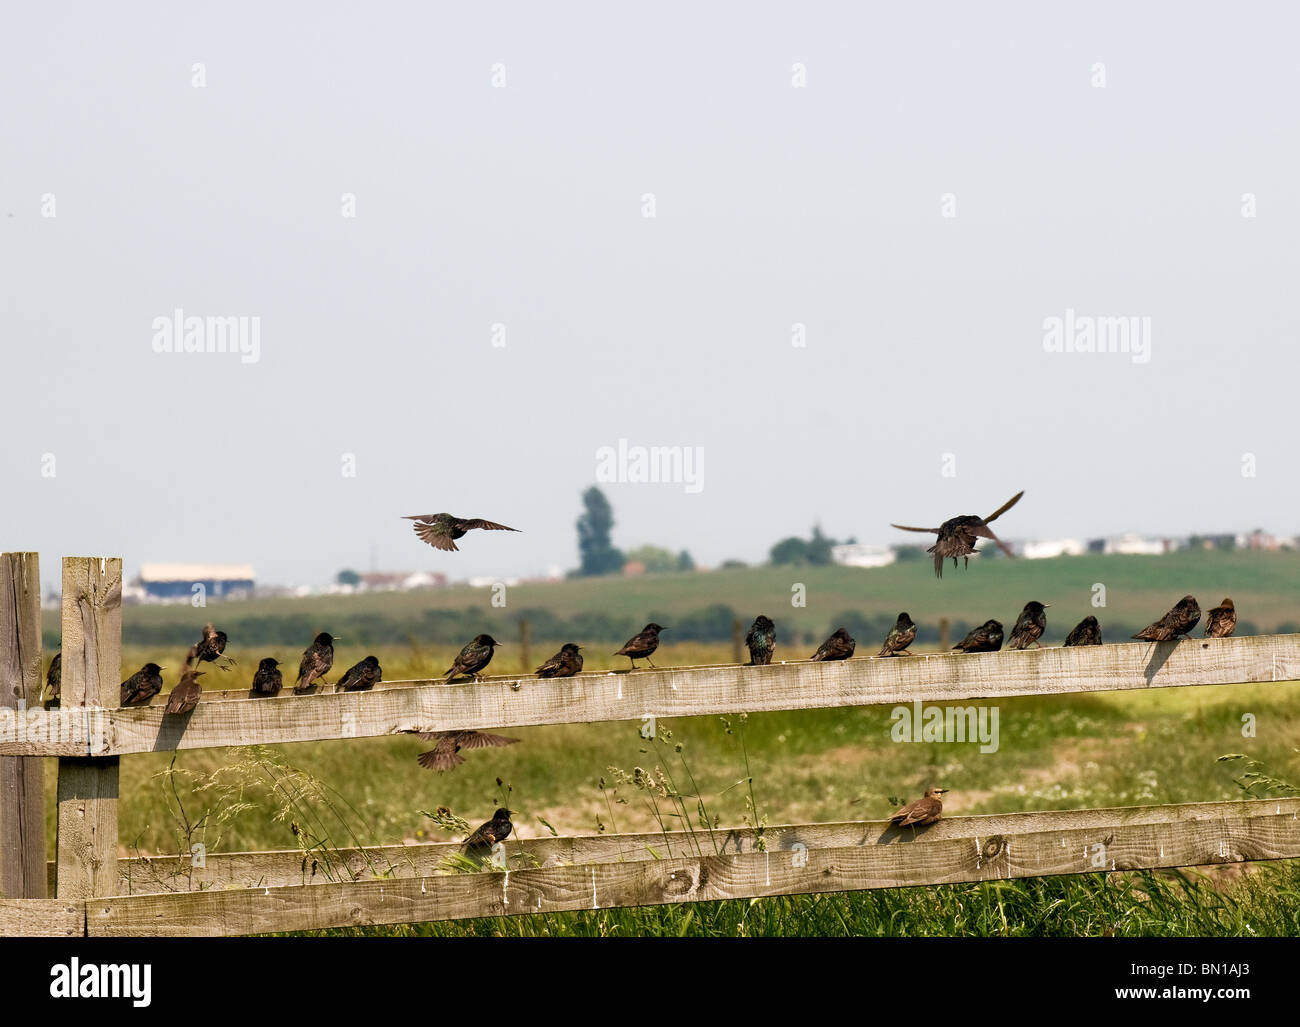 A flock of starlings perched on a wooden fence on the Isle of Sheppey in Kent.  Photo by Gordon Scammell - Stock Image